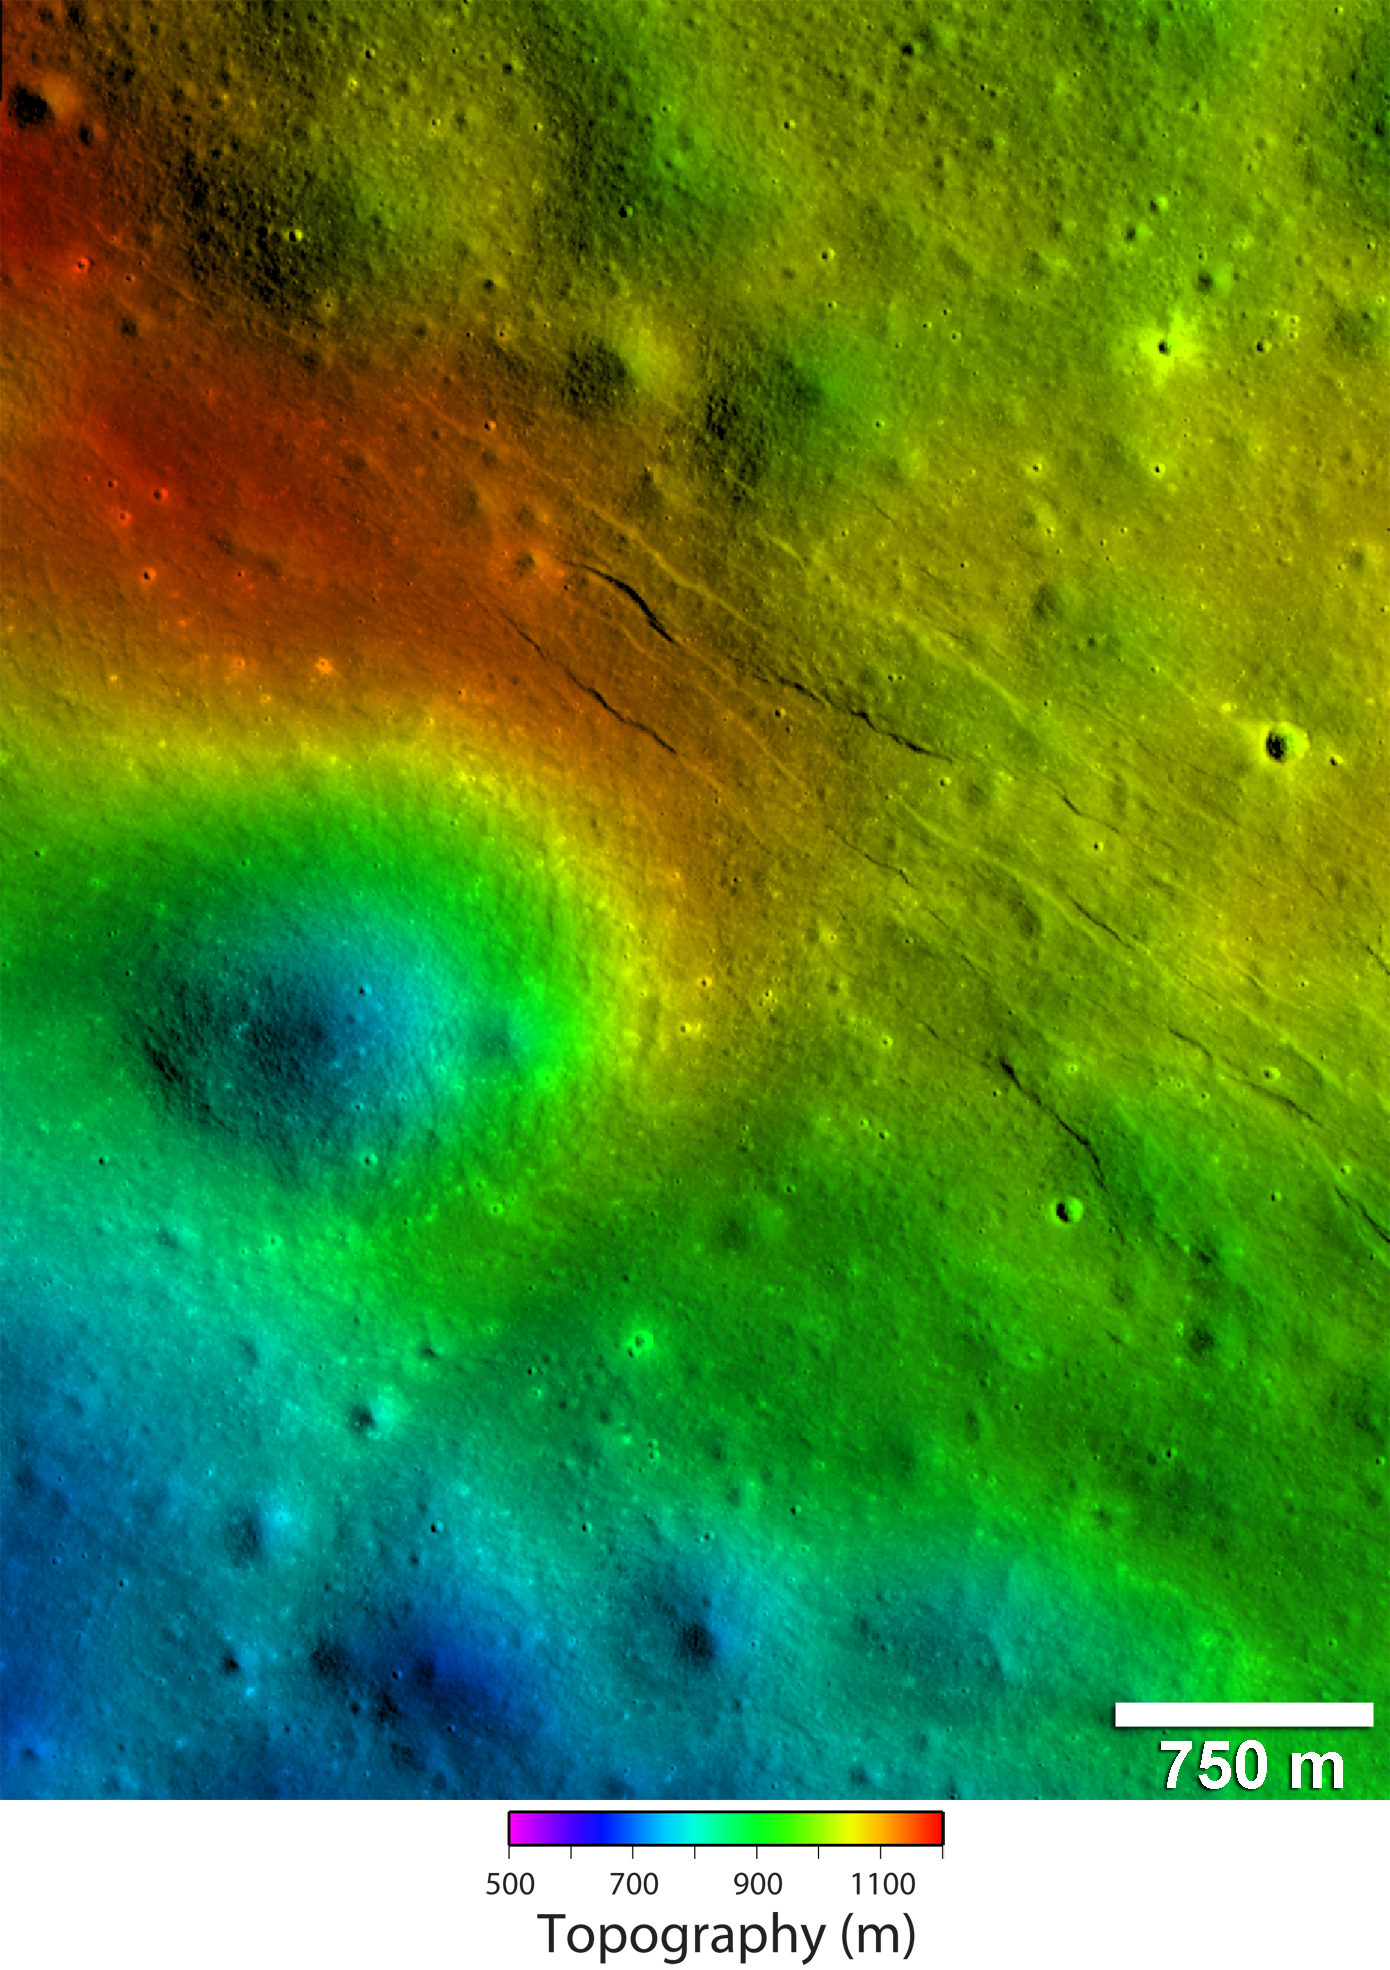 Moon's Scarred Crust Hints at Recent Activity, Scientists Say